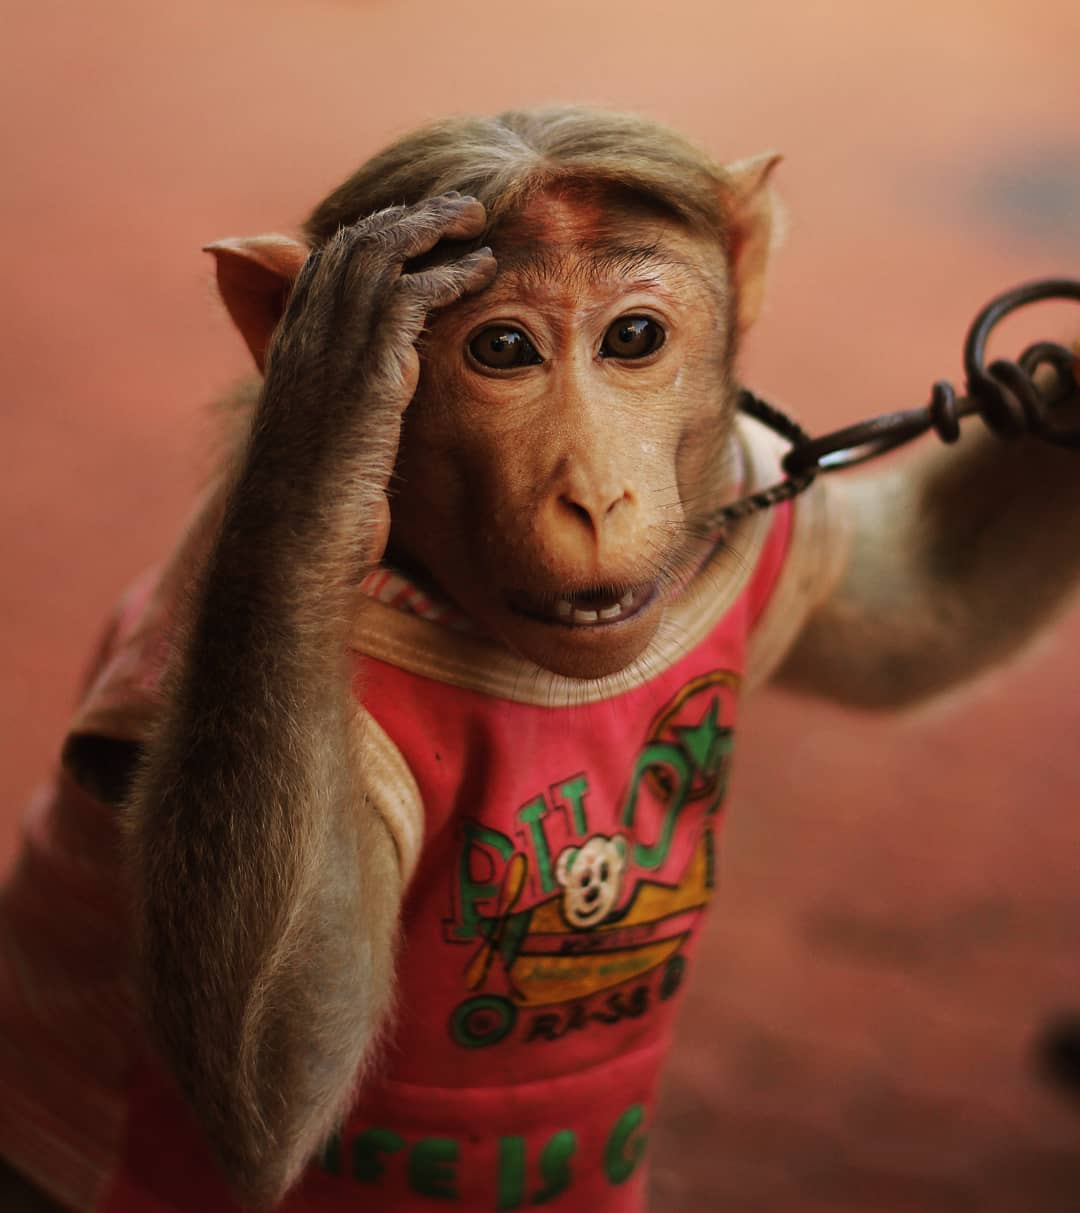 Monkey in the circus